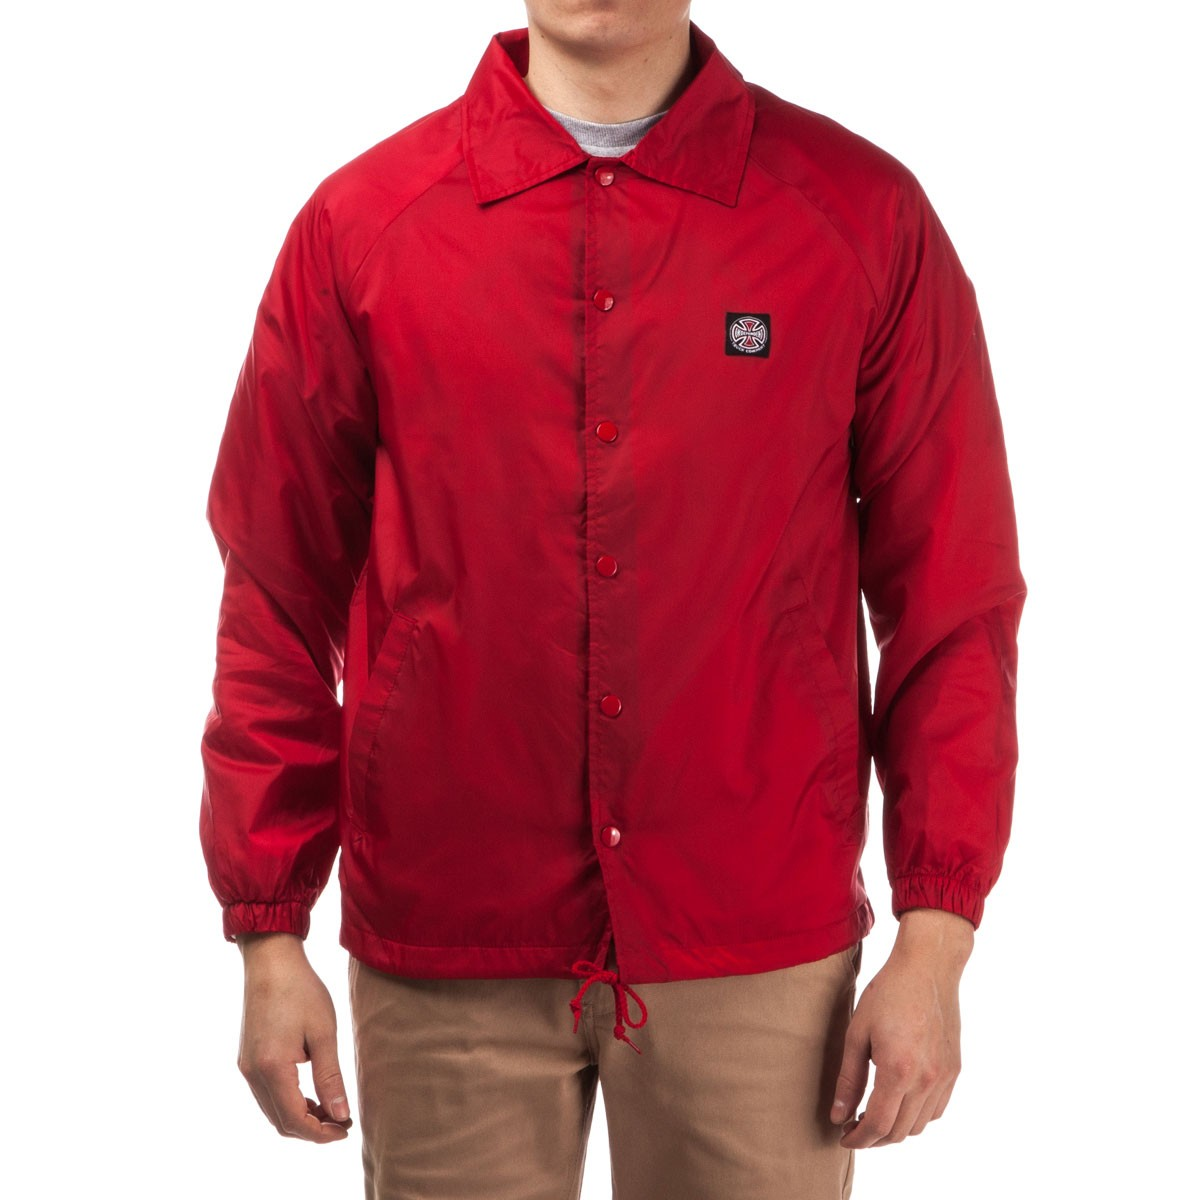 Subdue Coach Windbreaker Jacket - Red